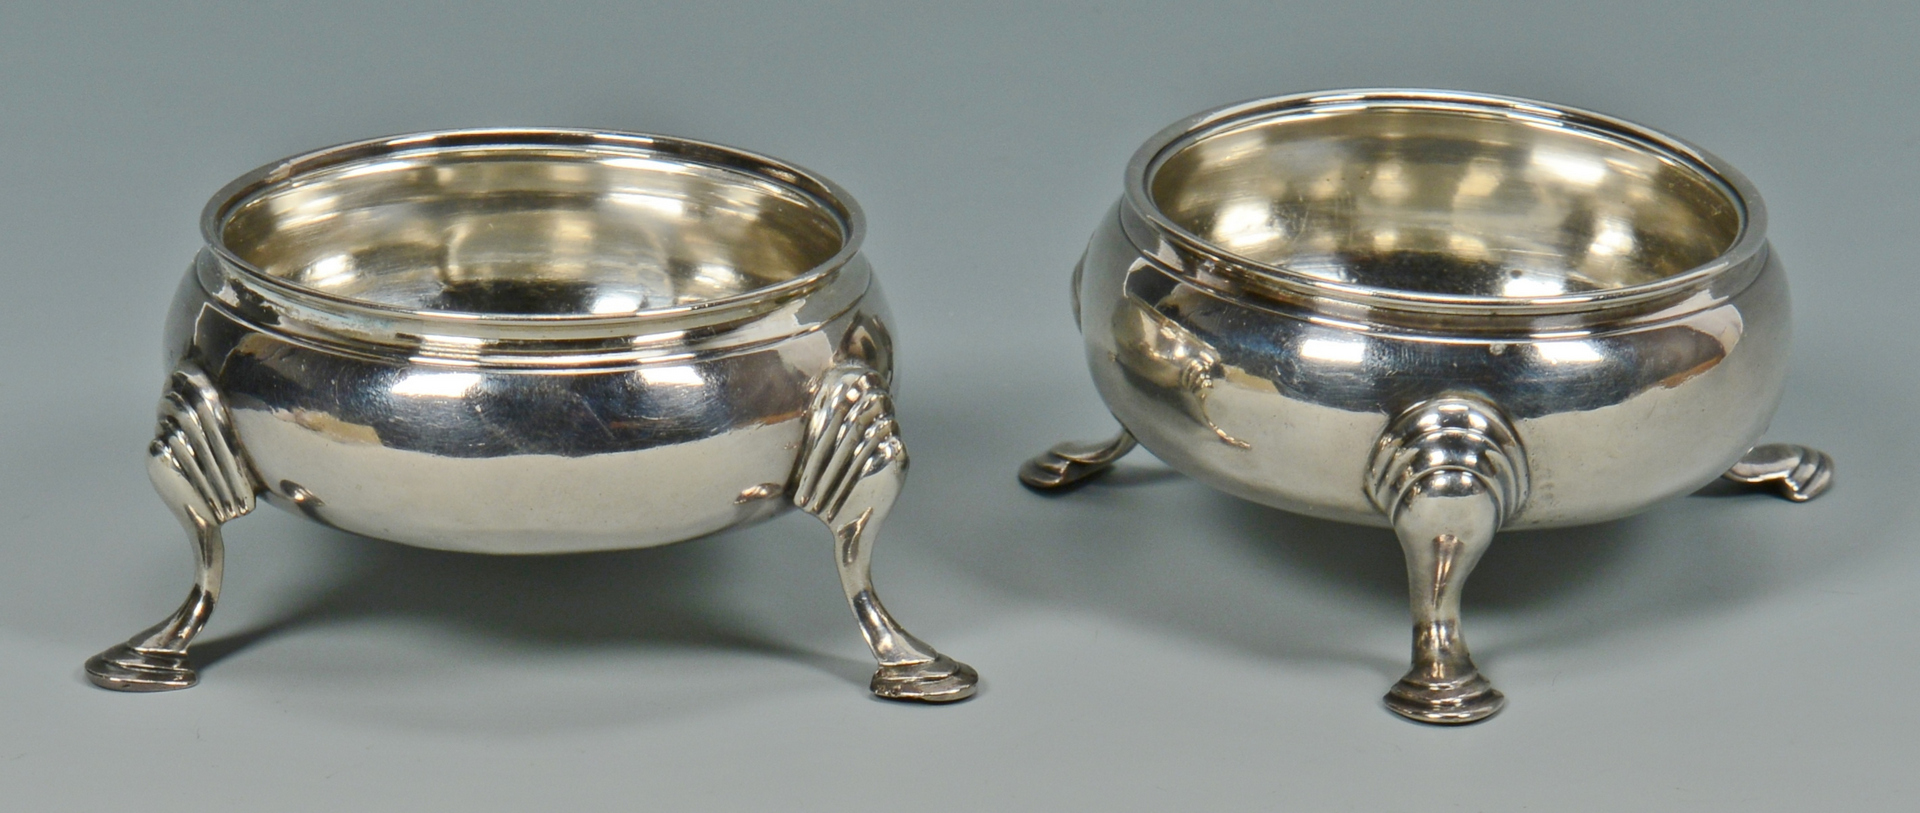 Lot 3088083: George II and George III Sterling Spoons and Salts